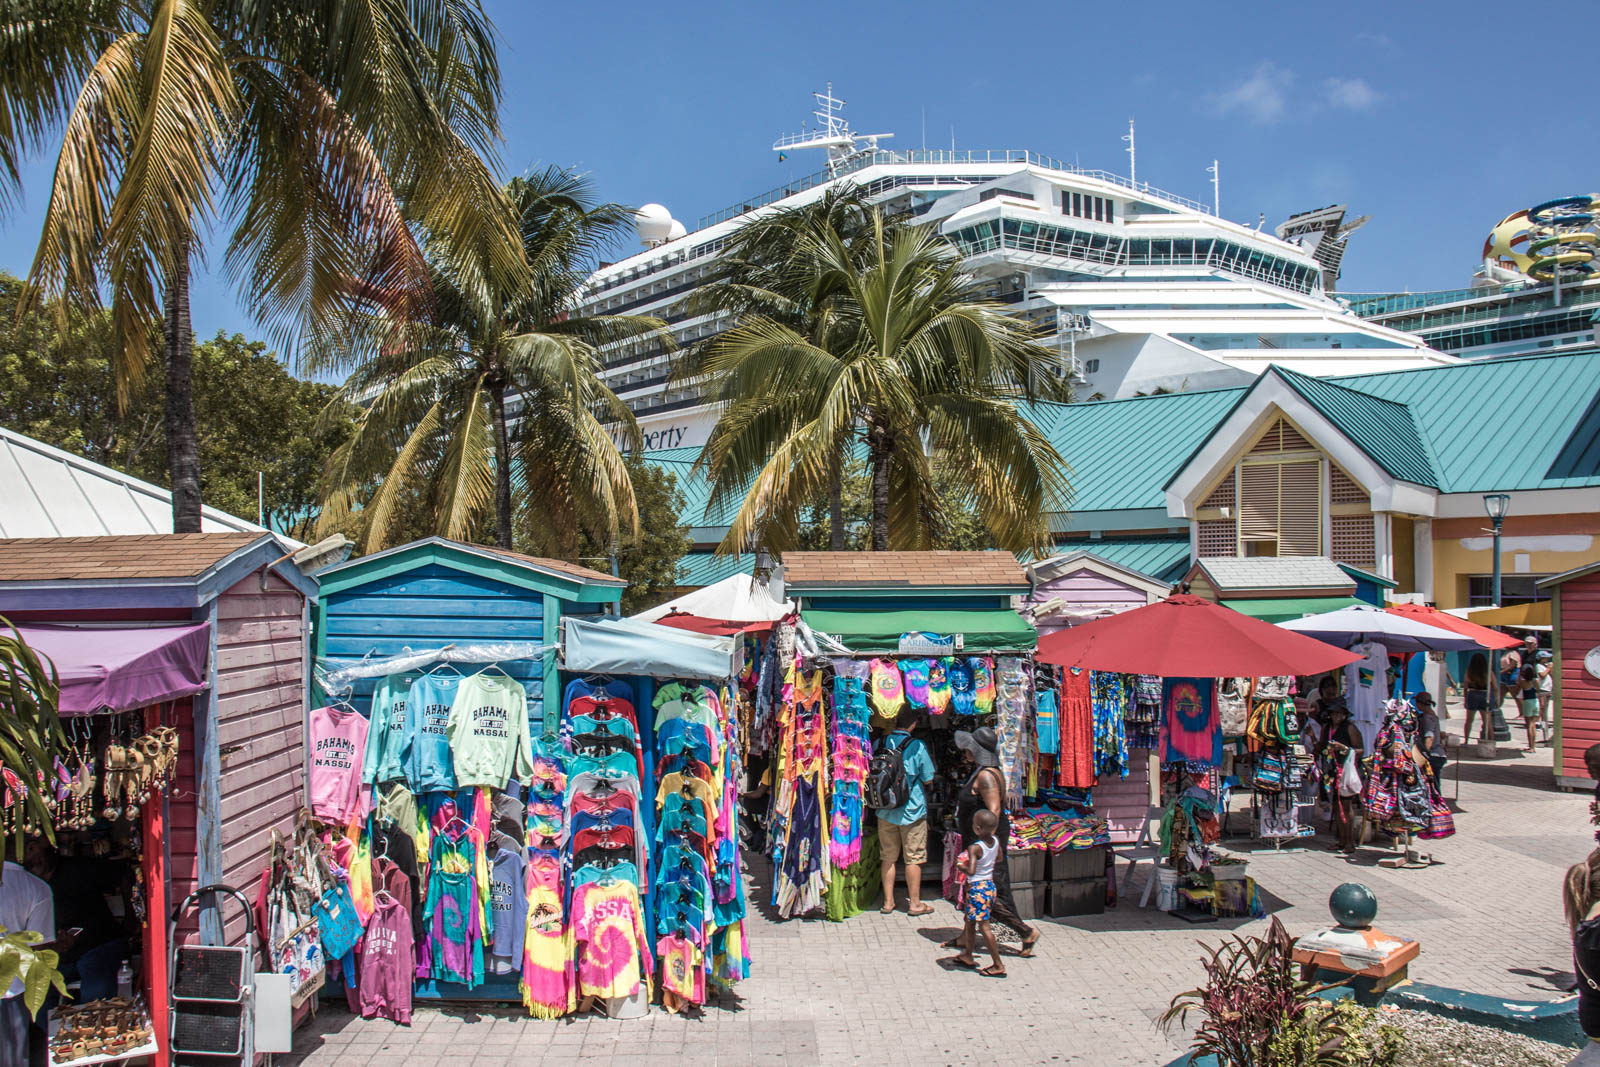 Check out all the best beaches in Nassau for cruisers near the Port of Nassau. There is plenty what to do in Nassau port and things to do in Nassau Bahamas cruise port for day trippers from Florida.